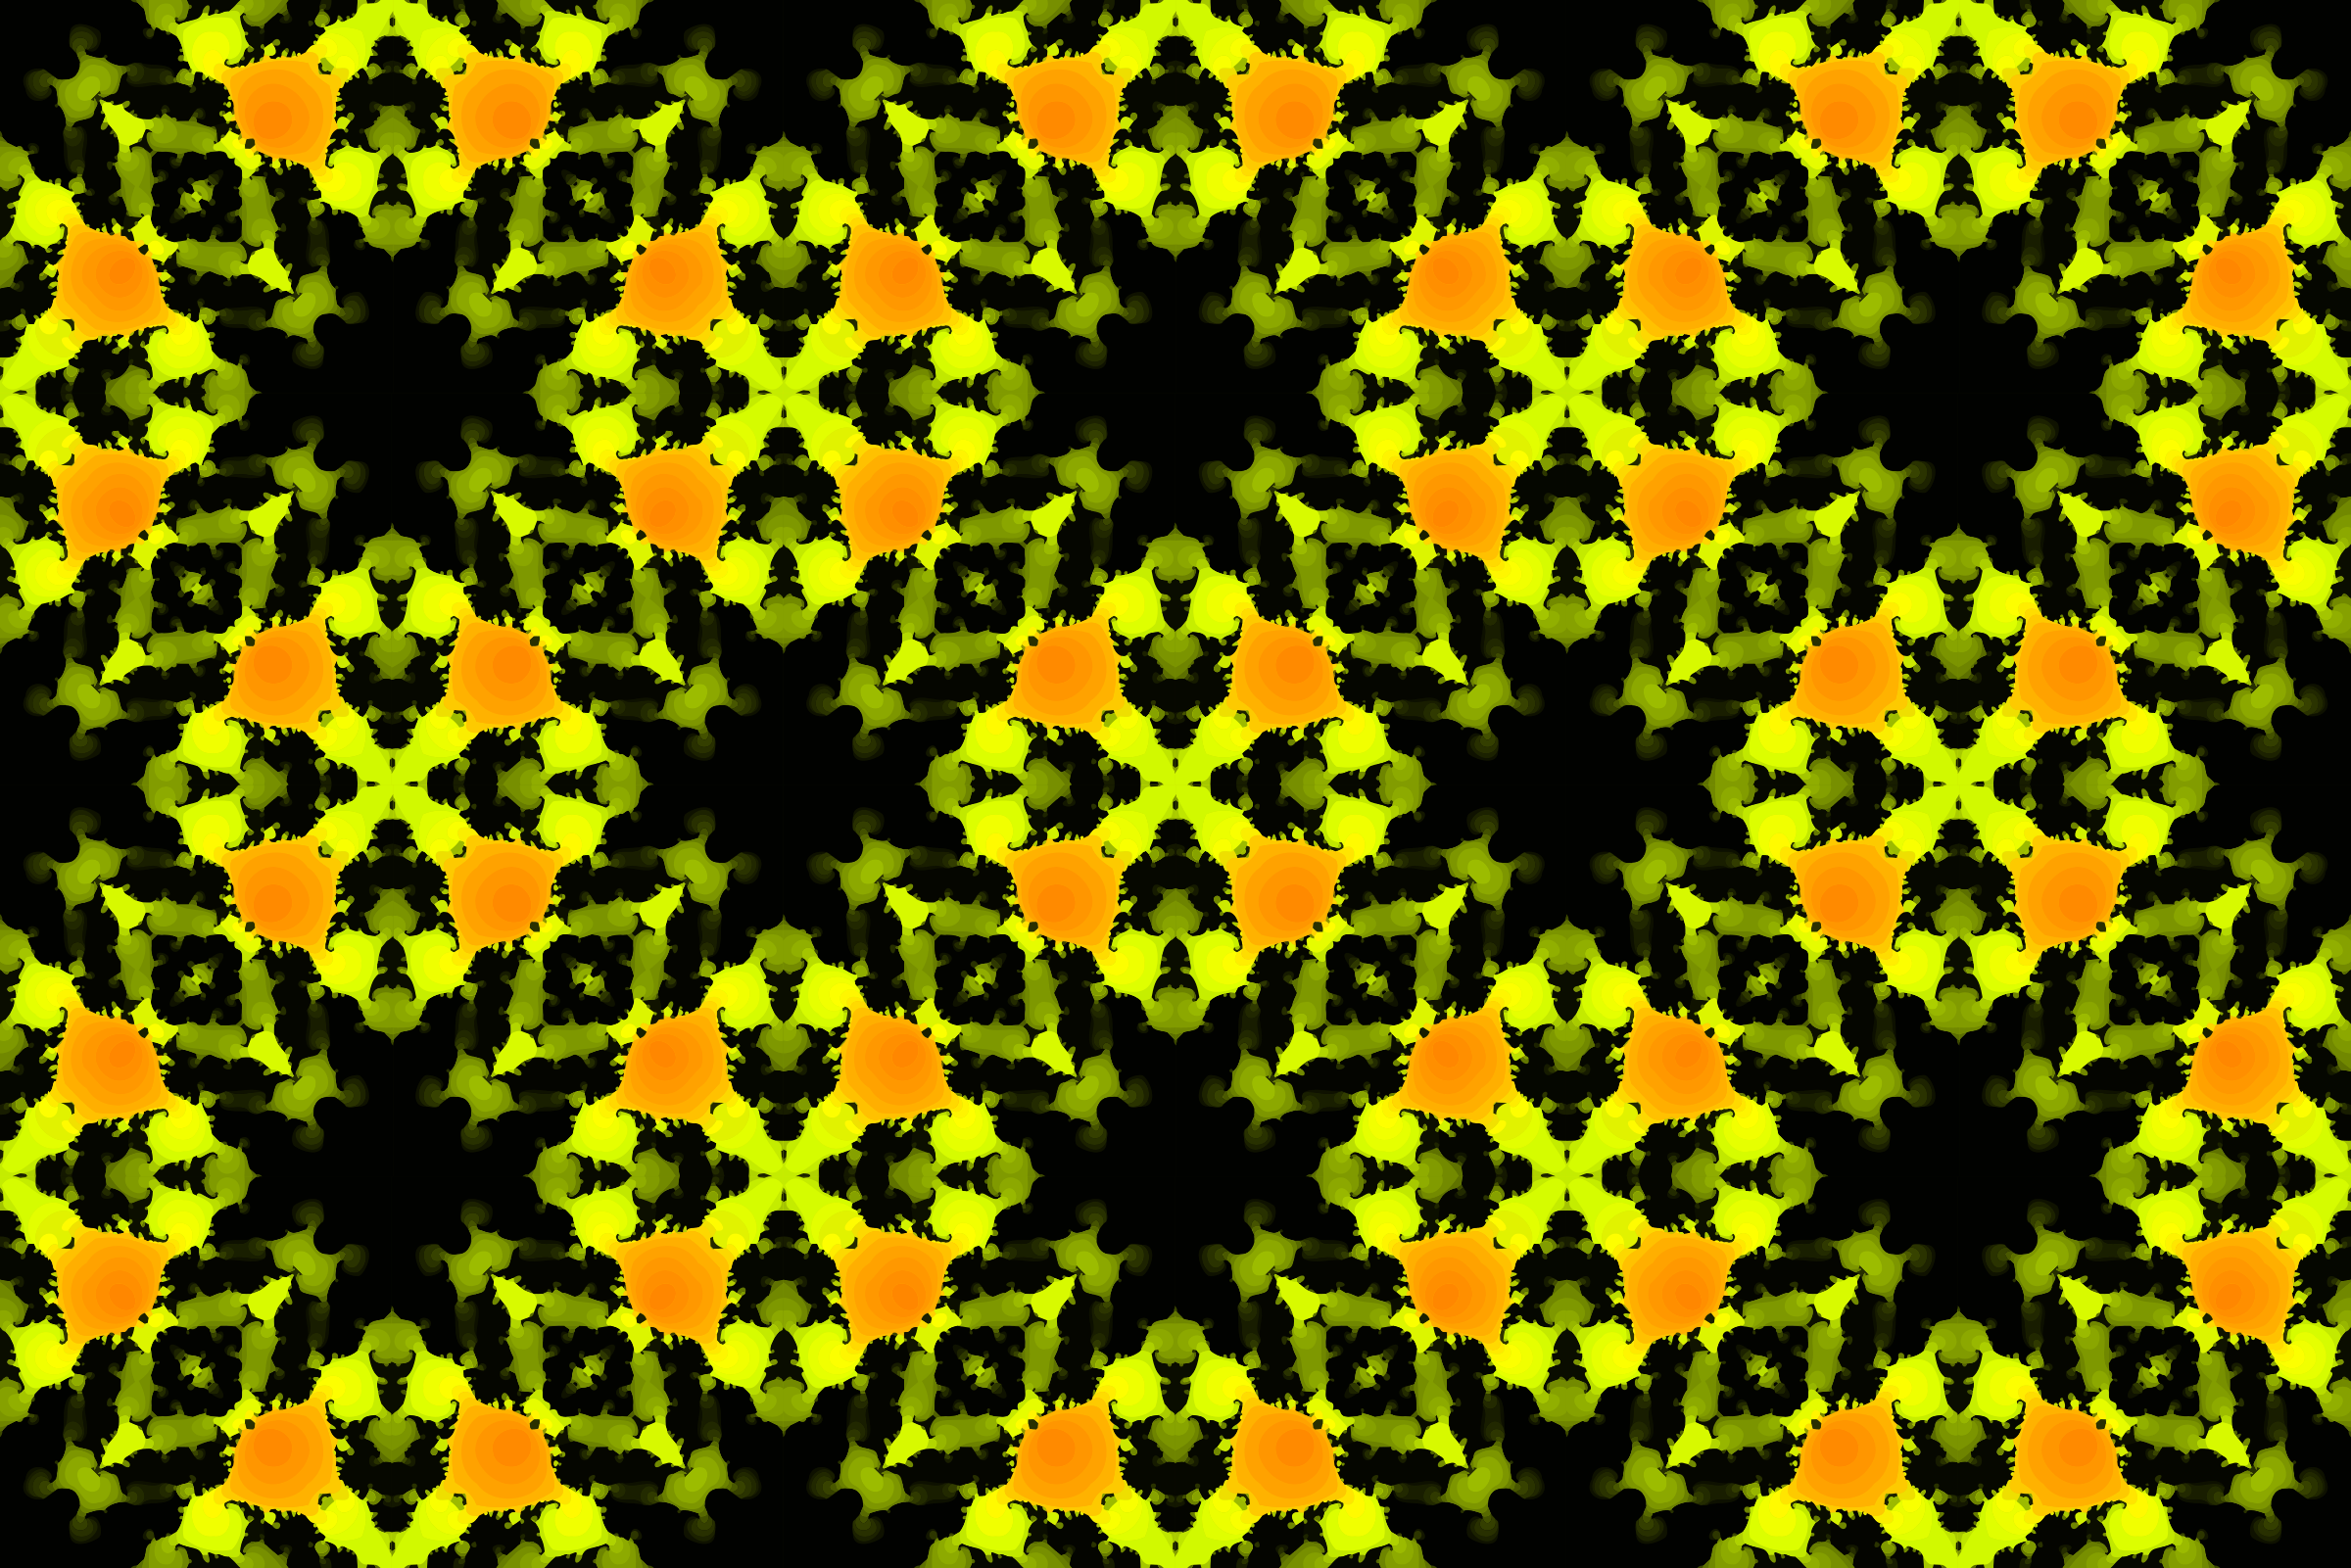 Background pattern 150 (colour 2) by Firkin